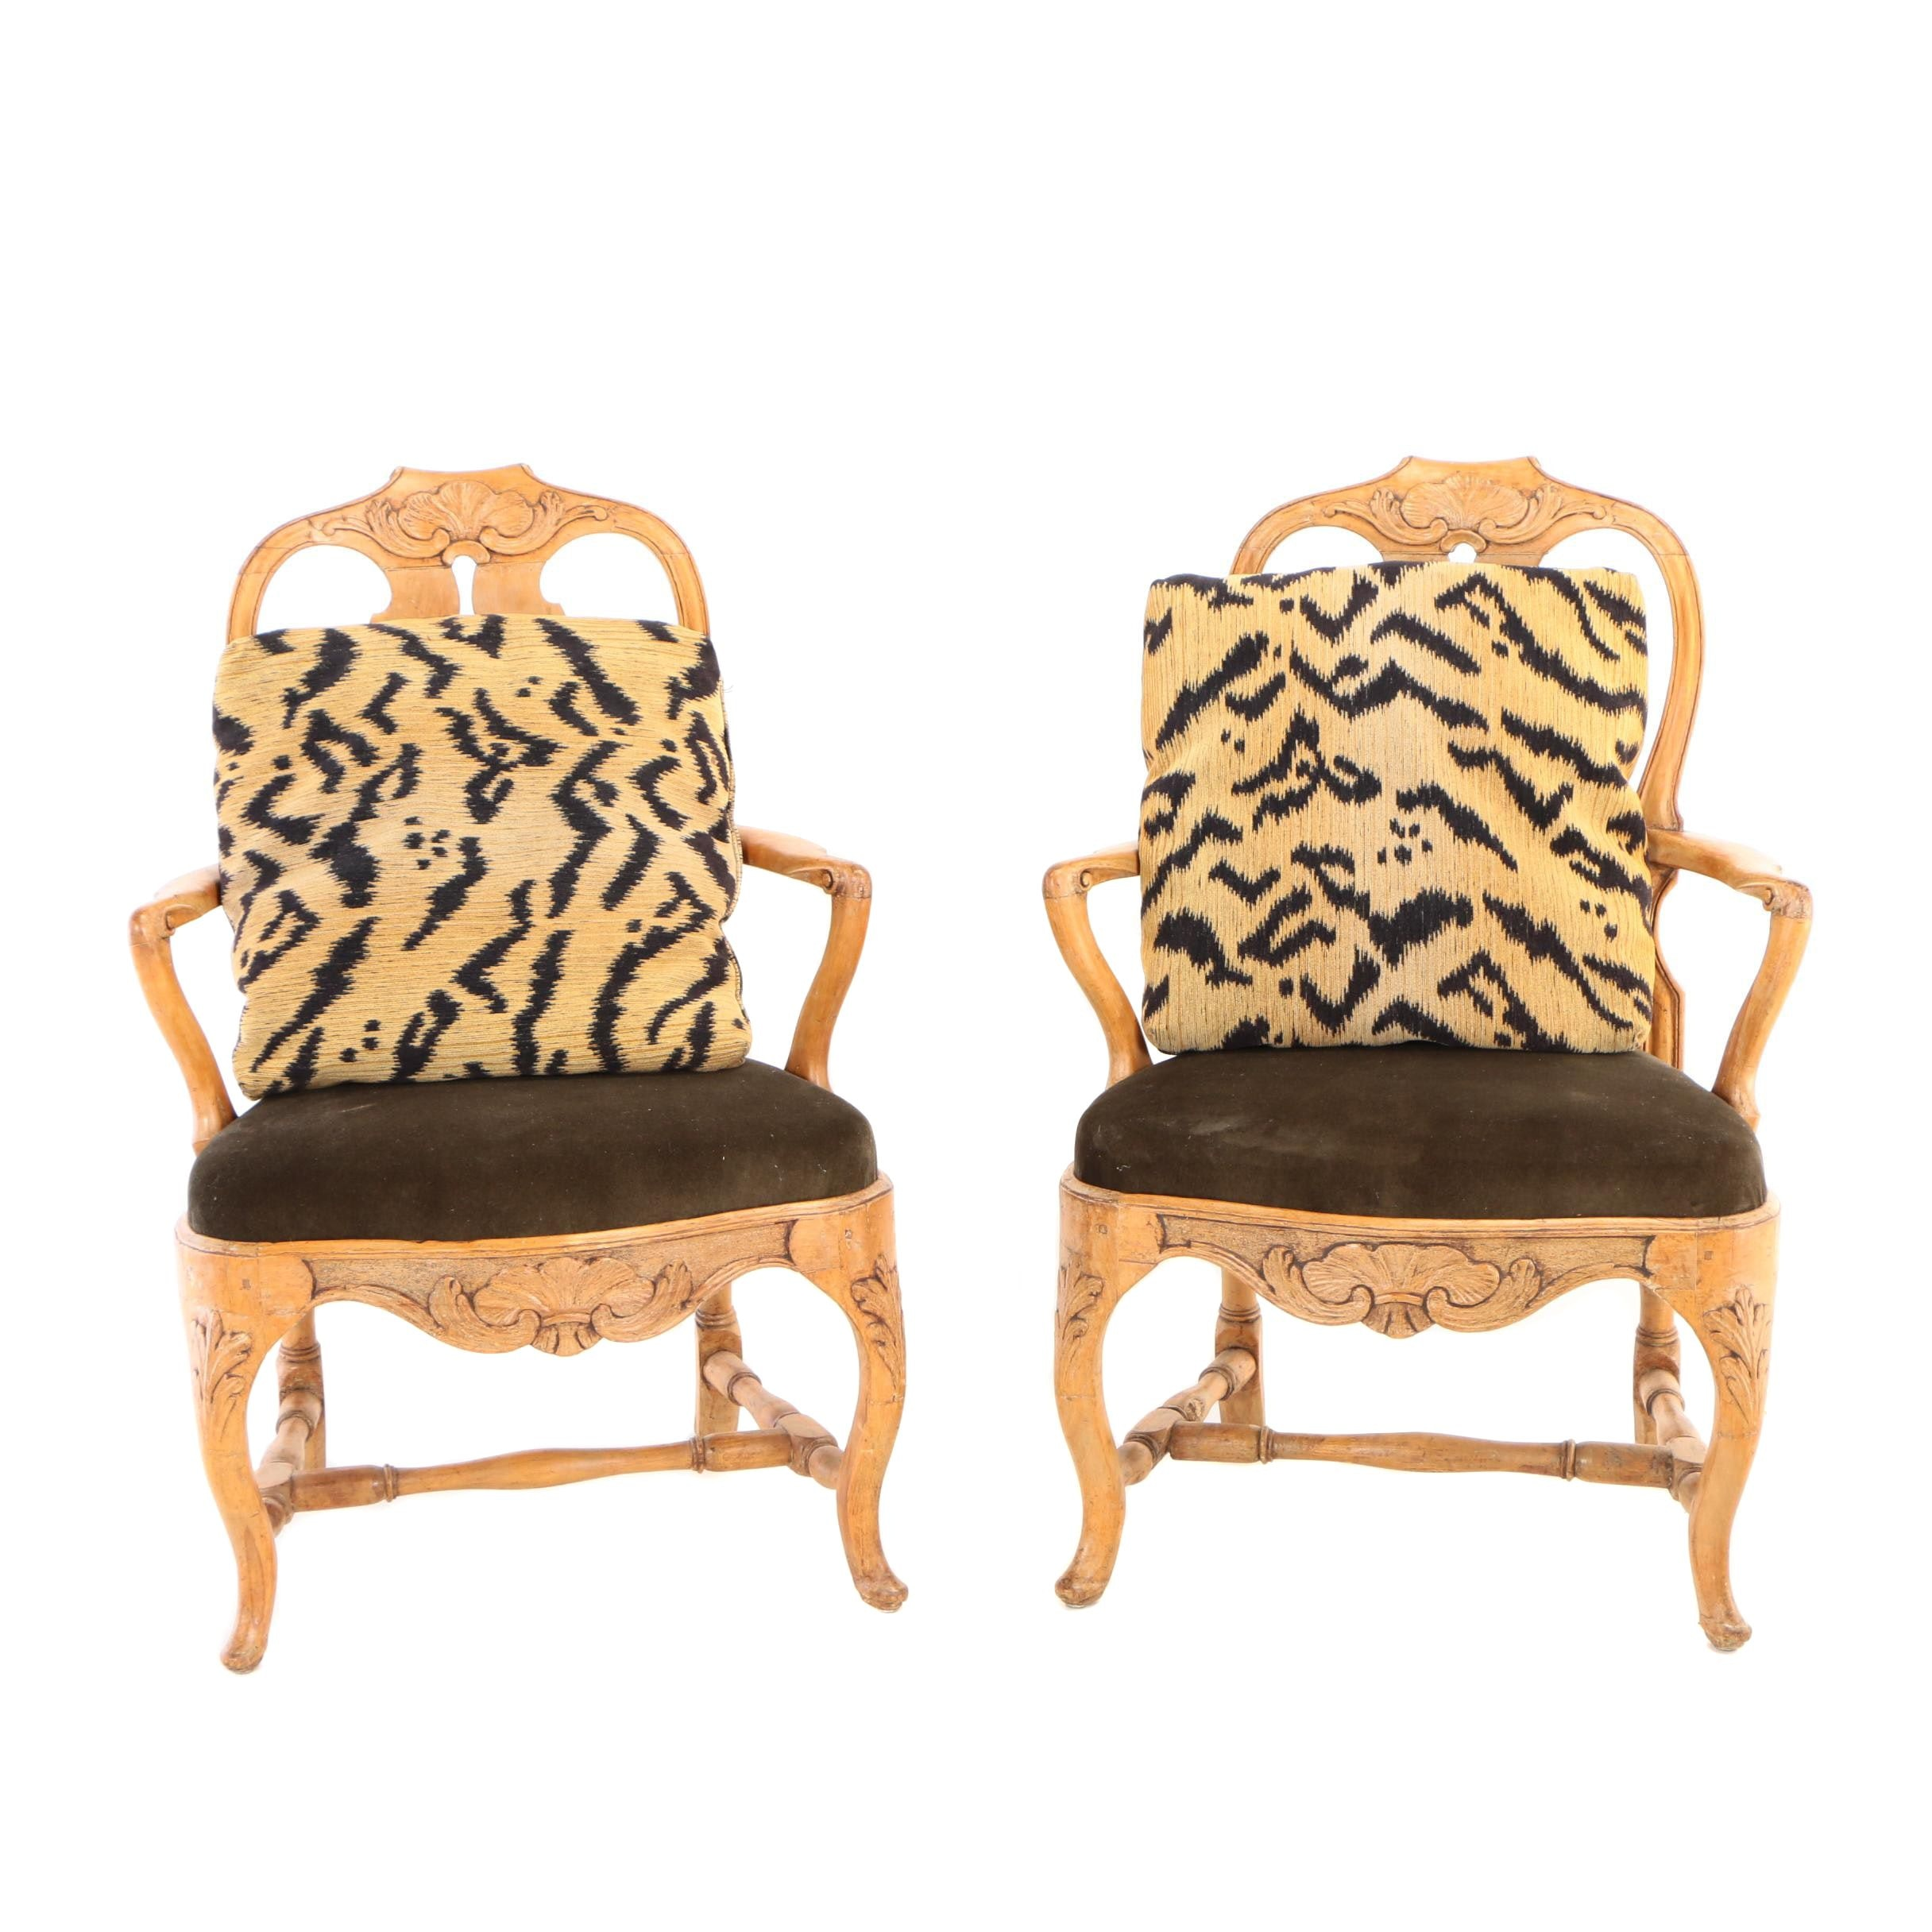 Pair of Swedish Open Armchairs, Late 18th/19th Century